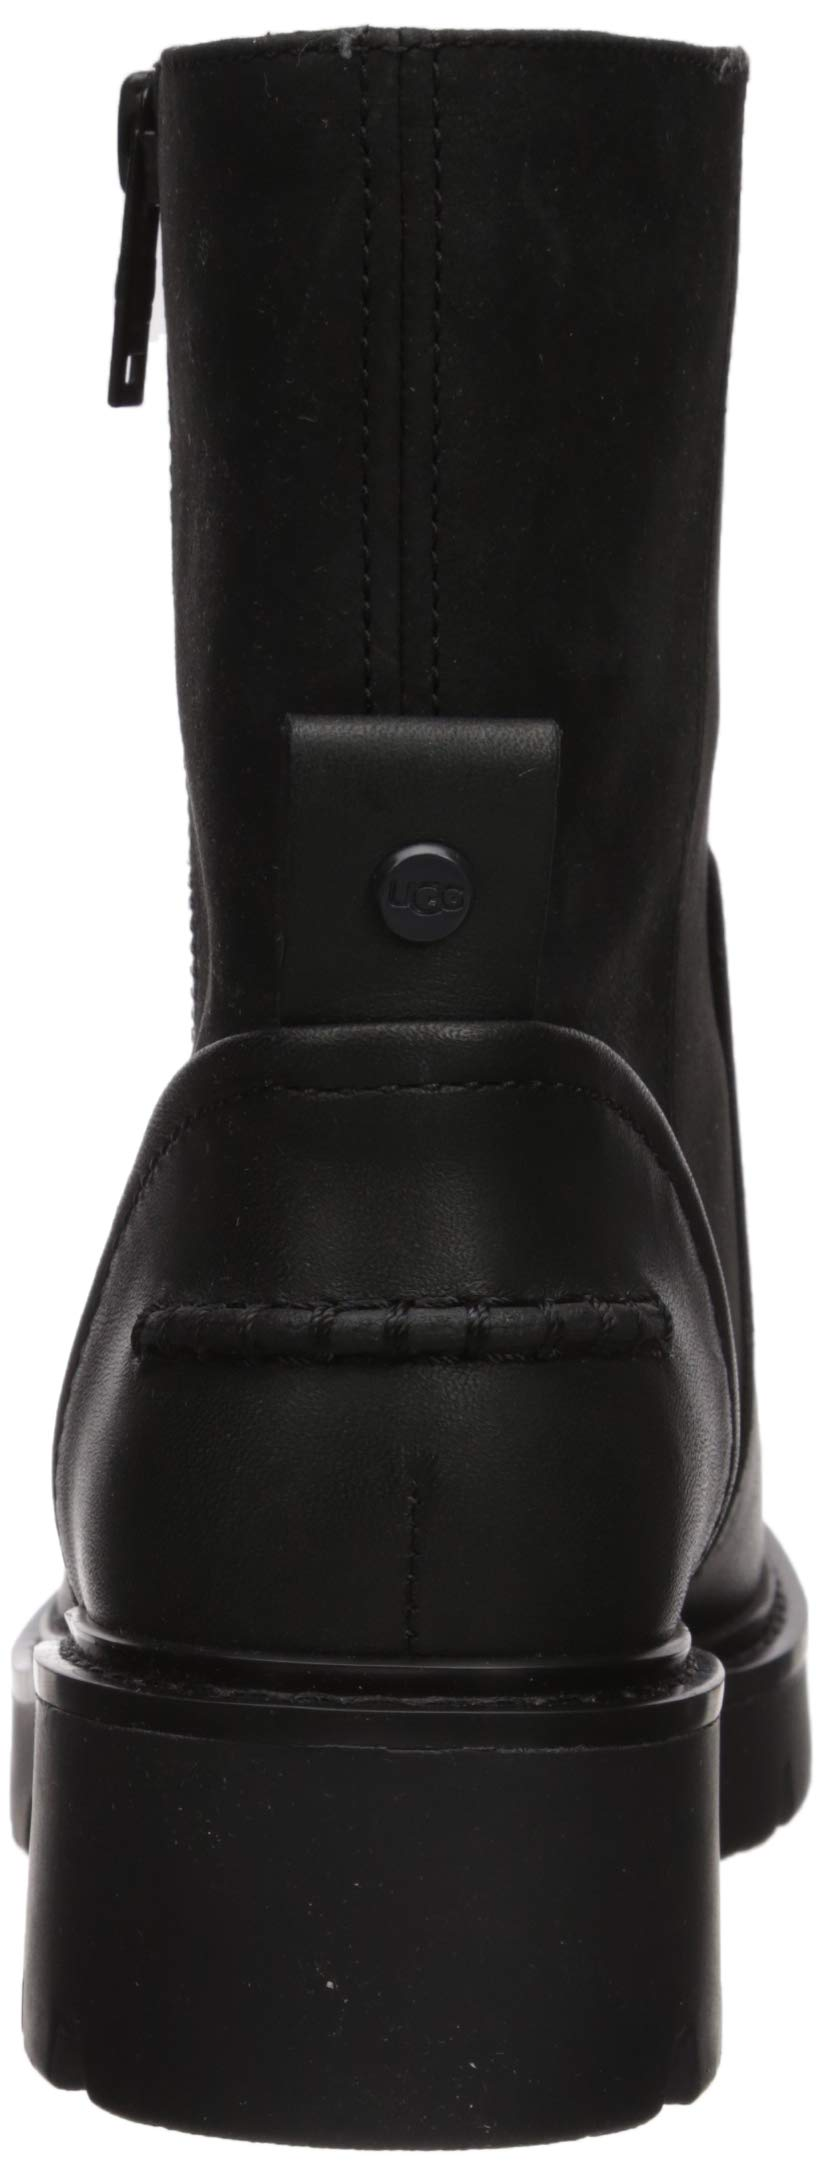 UGG Women's Polk Combat Boot, Black, 5.5 M US 2